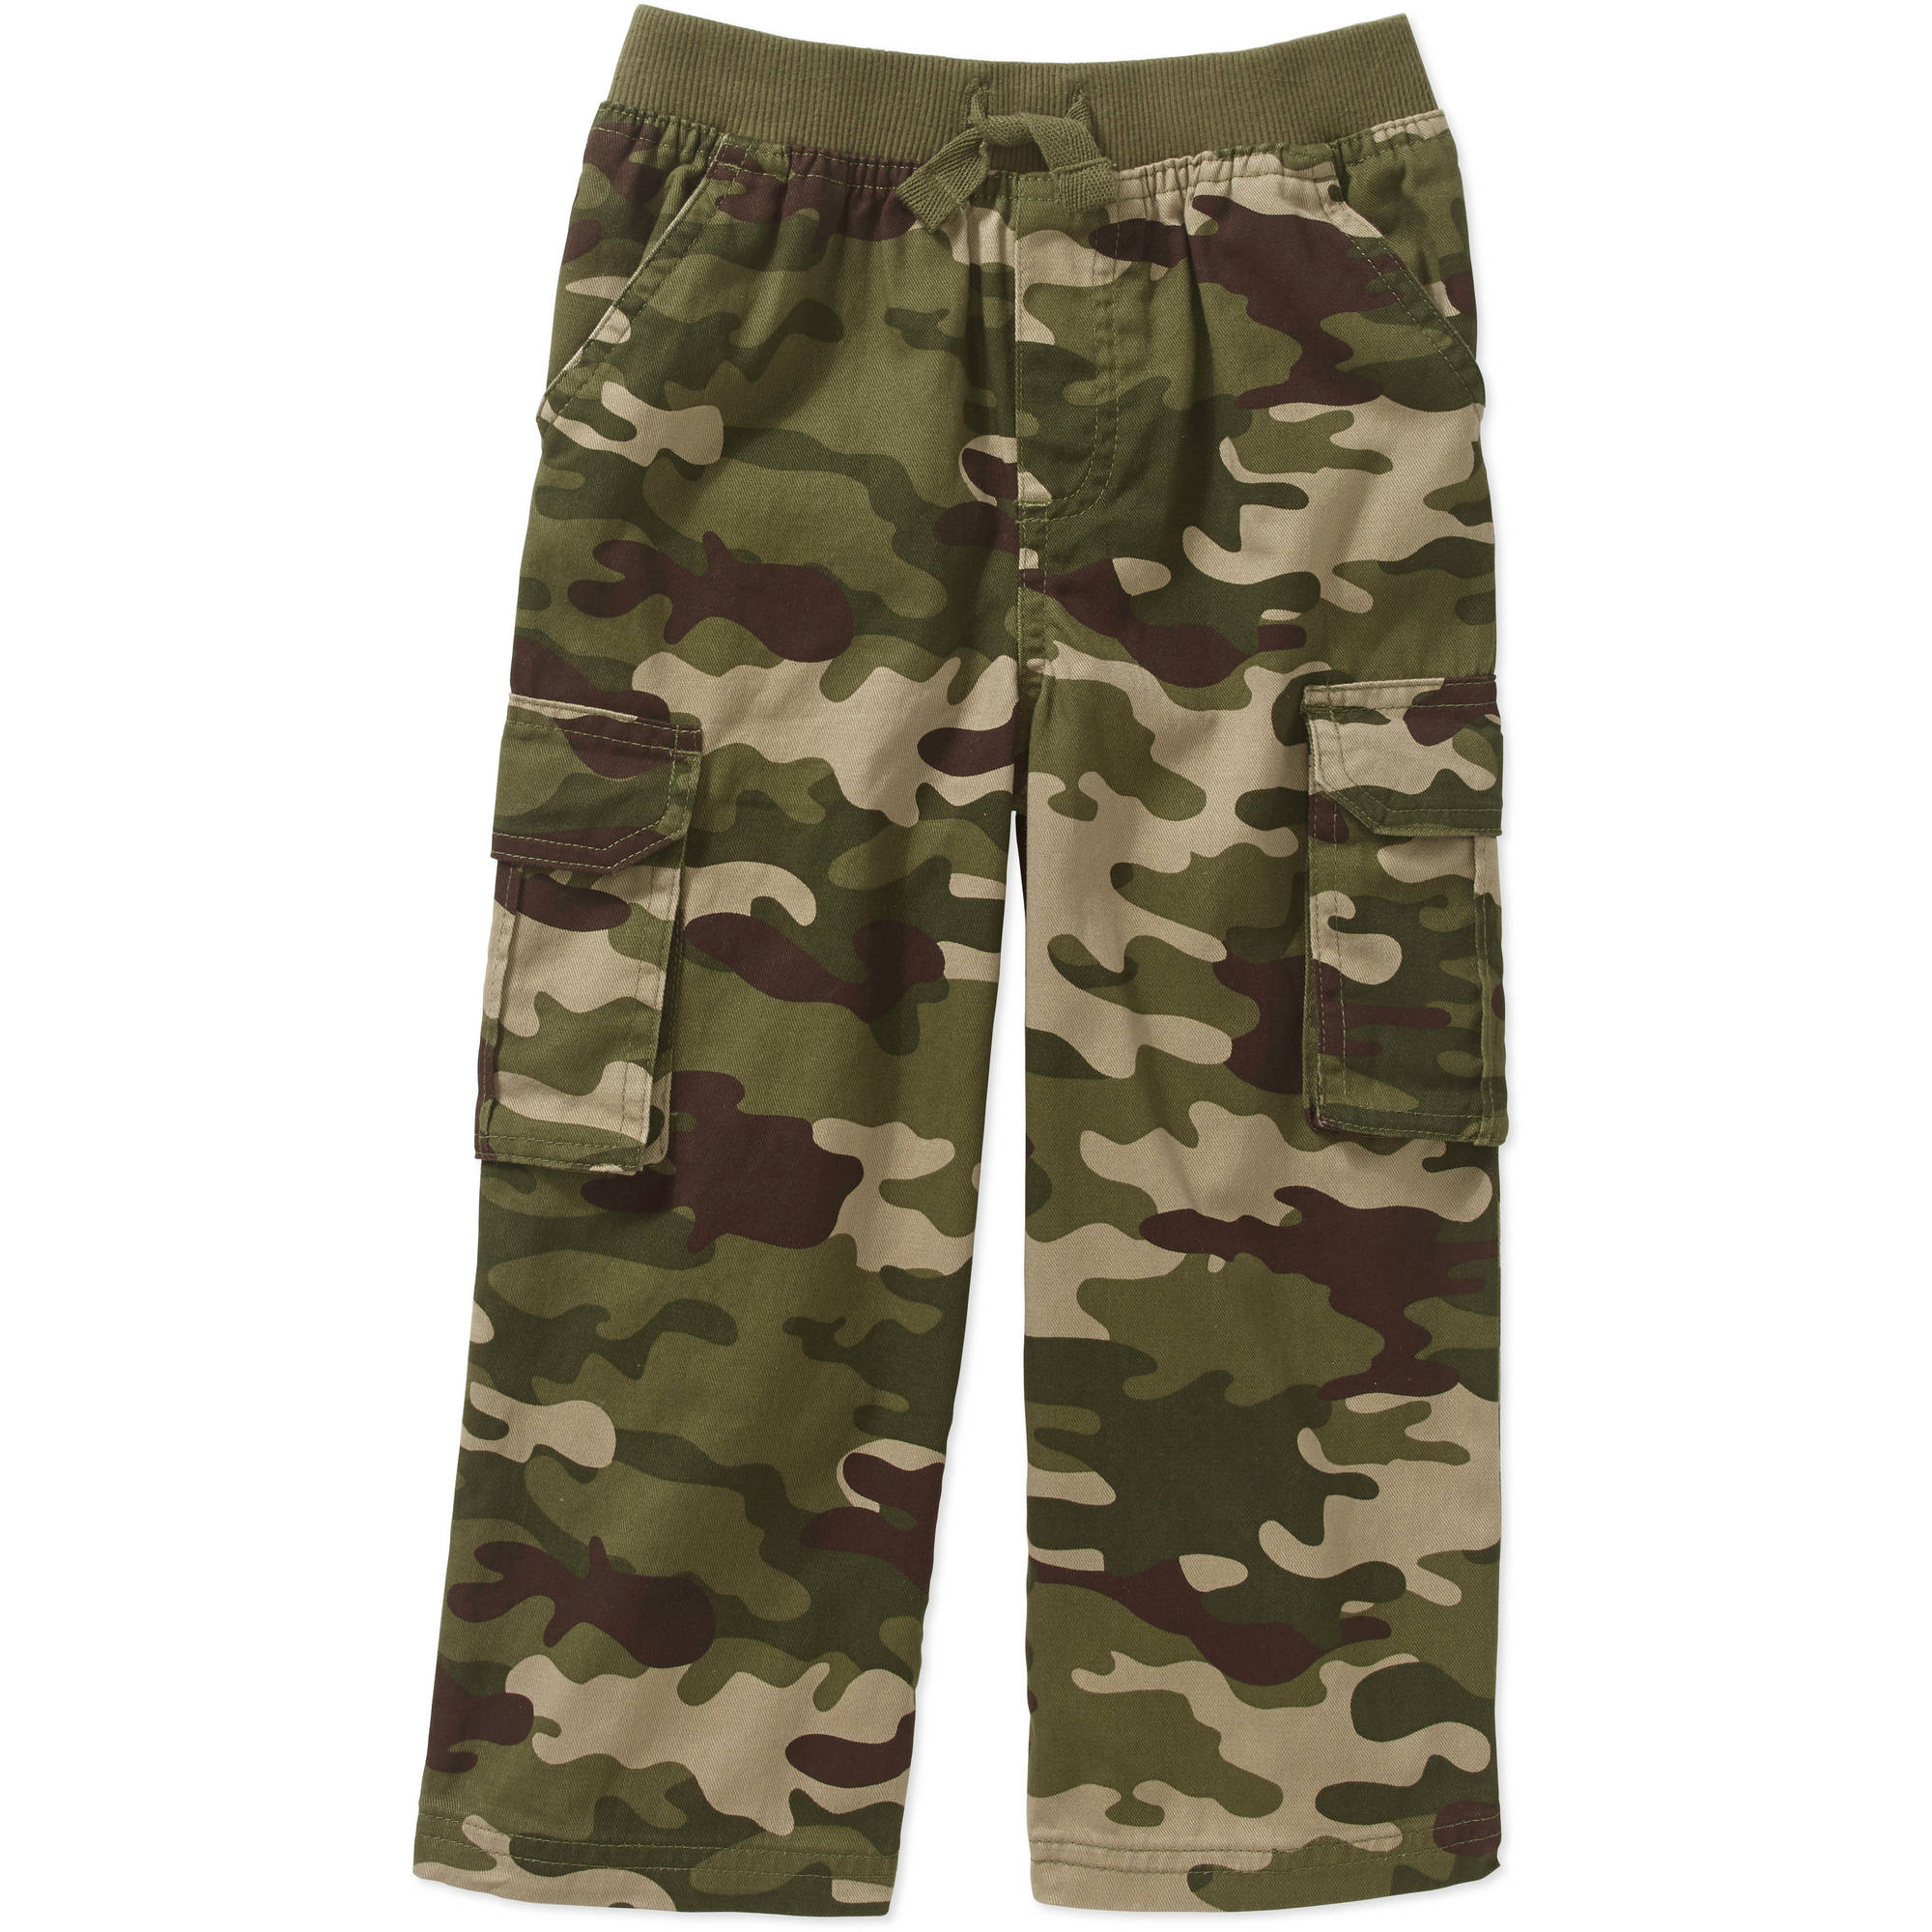 Garanimals Baby Toddler Boys Printed Twill Cargo Pants